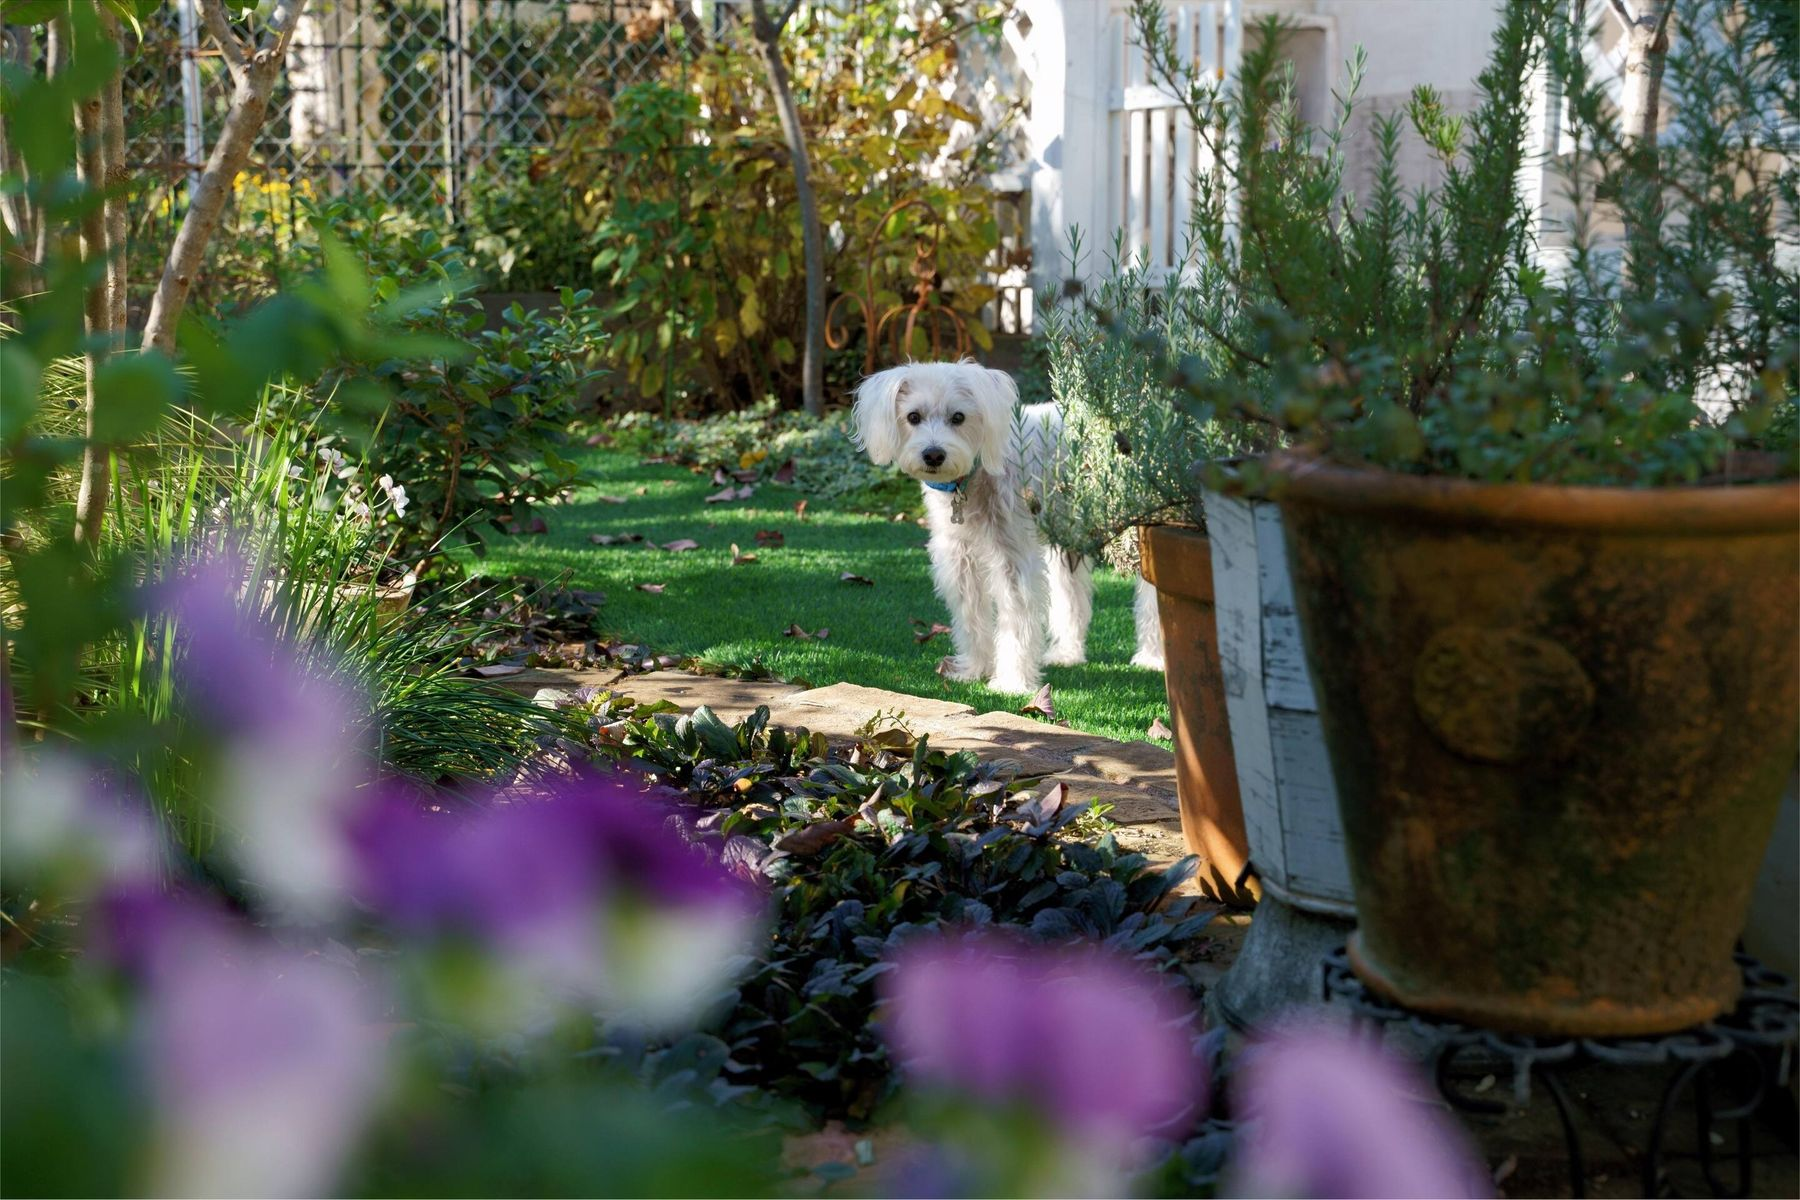 dog in garden with dog friendly plants